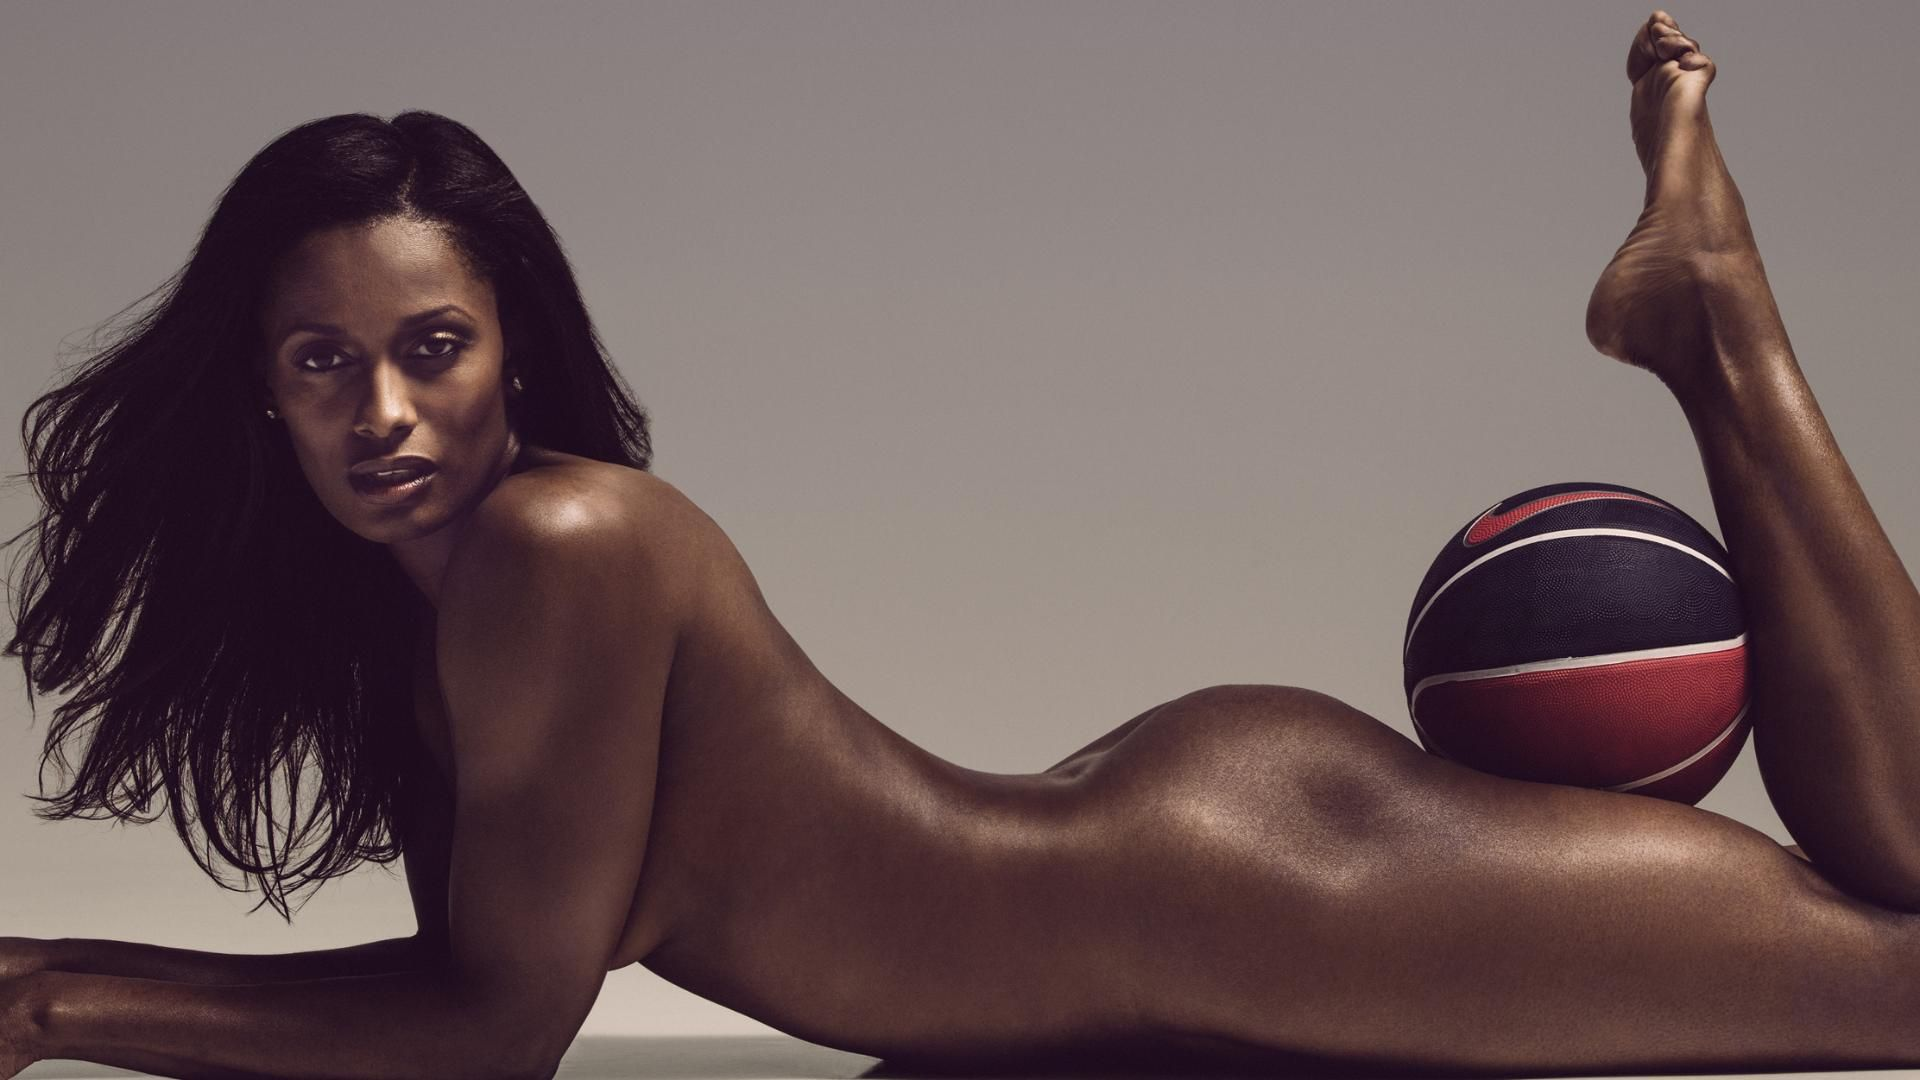 Marlen esparza espn body issue